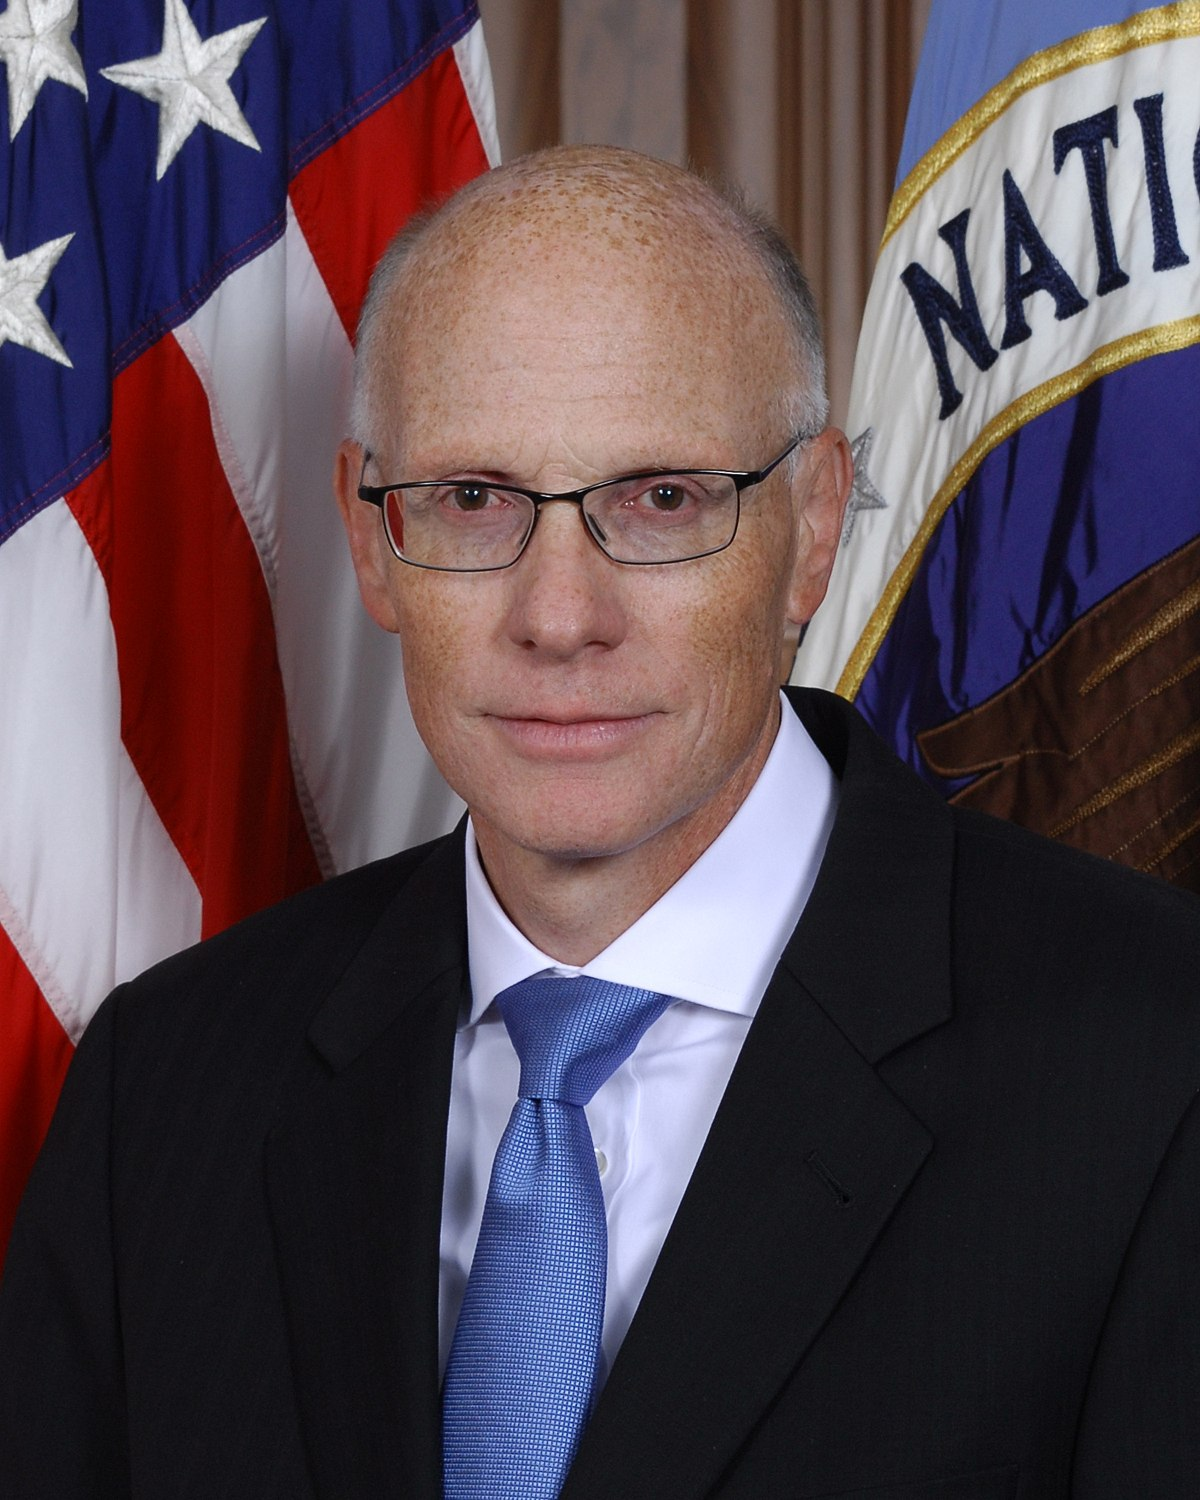 Deputy Director of the National Security Agency - Wikipedia